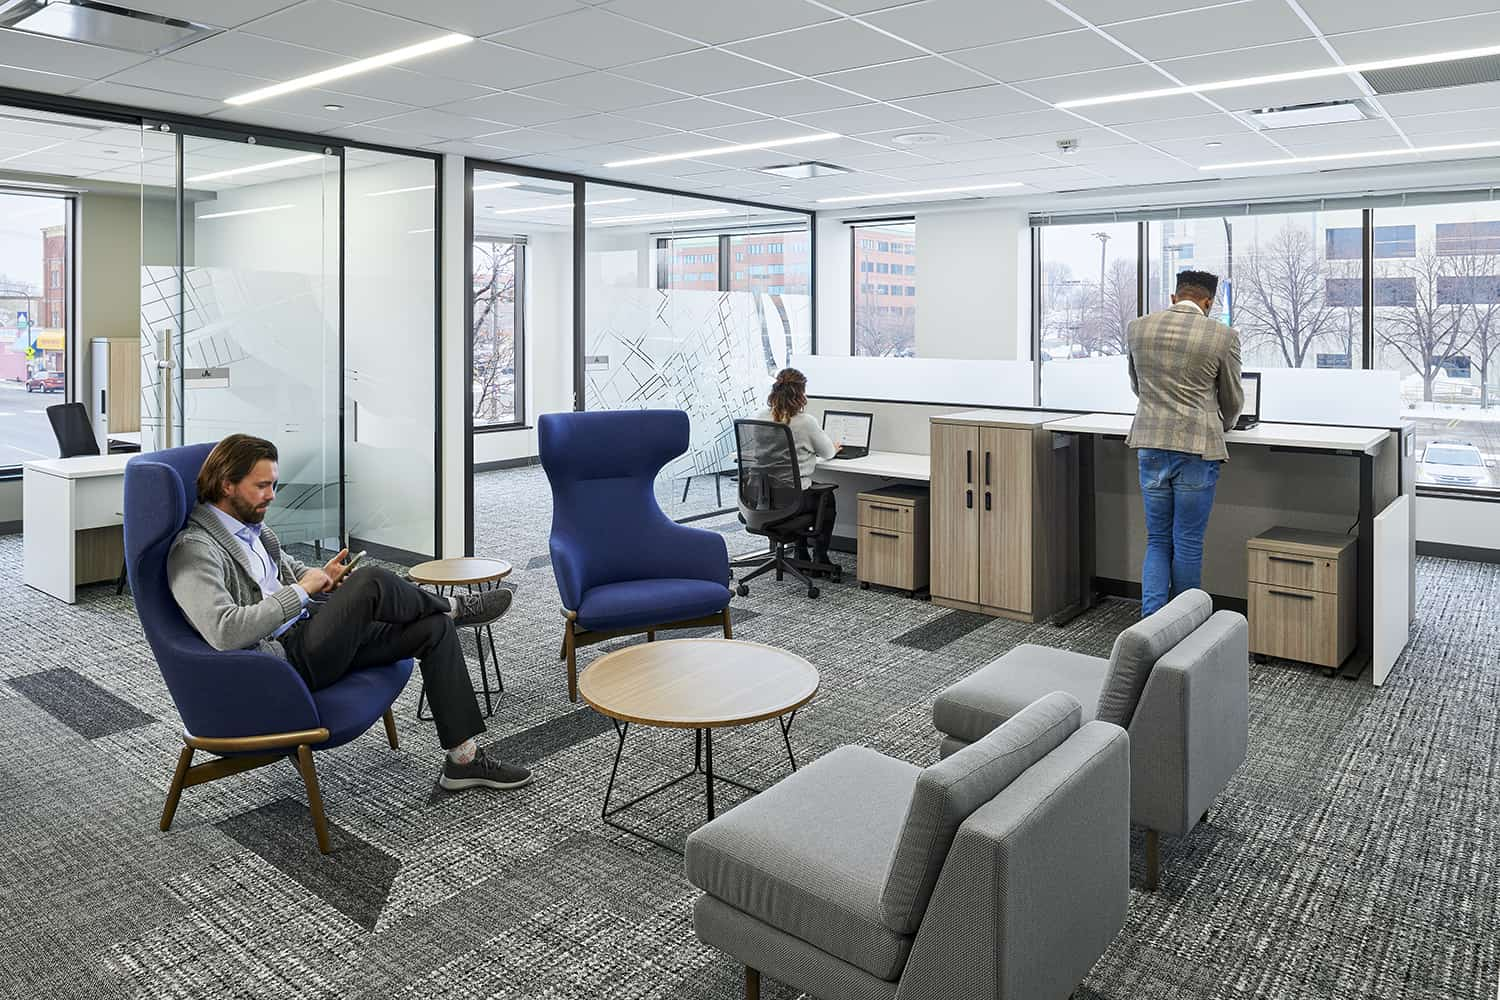 Open touchdown space with blue furniture within an open office environment.